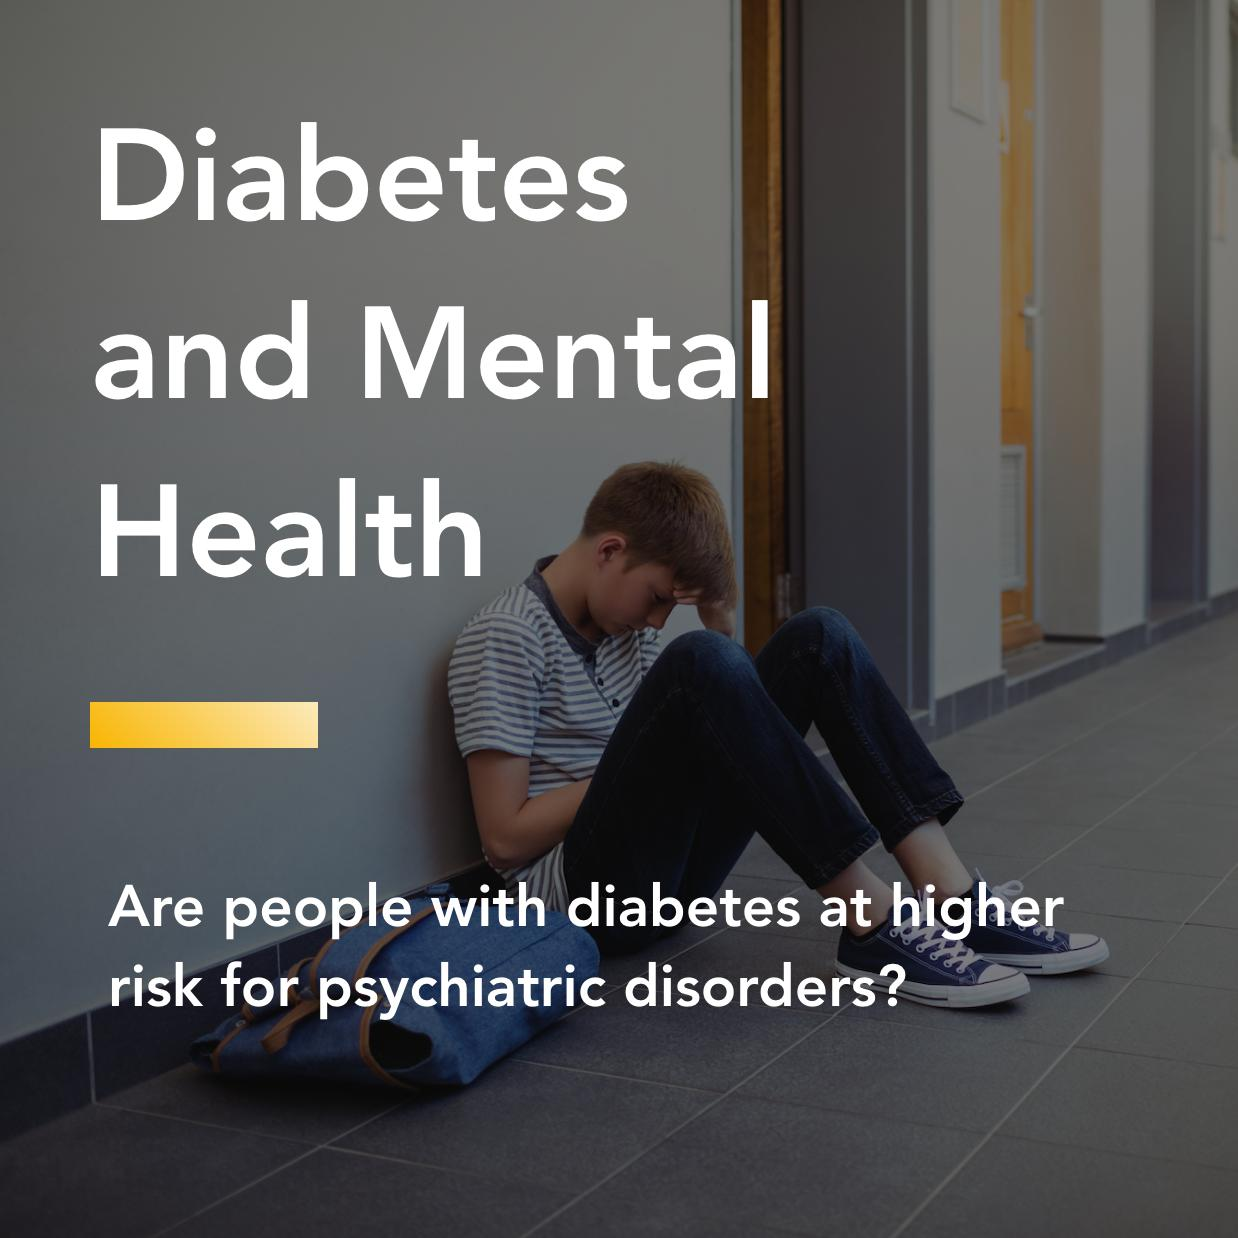 diabetes and mental health title